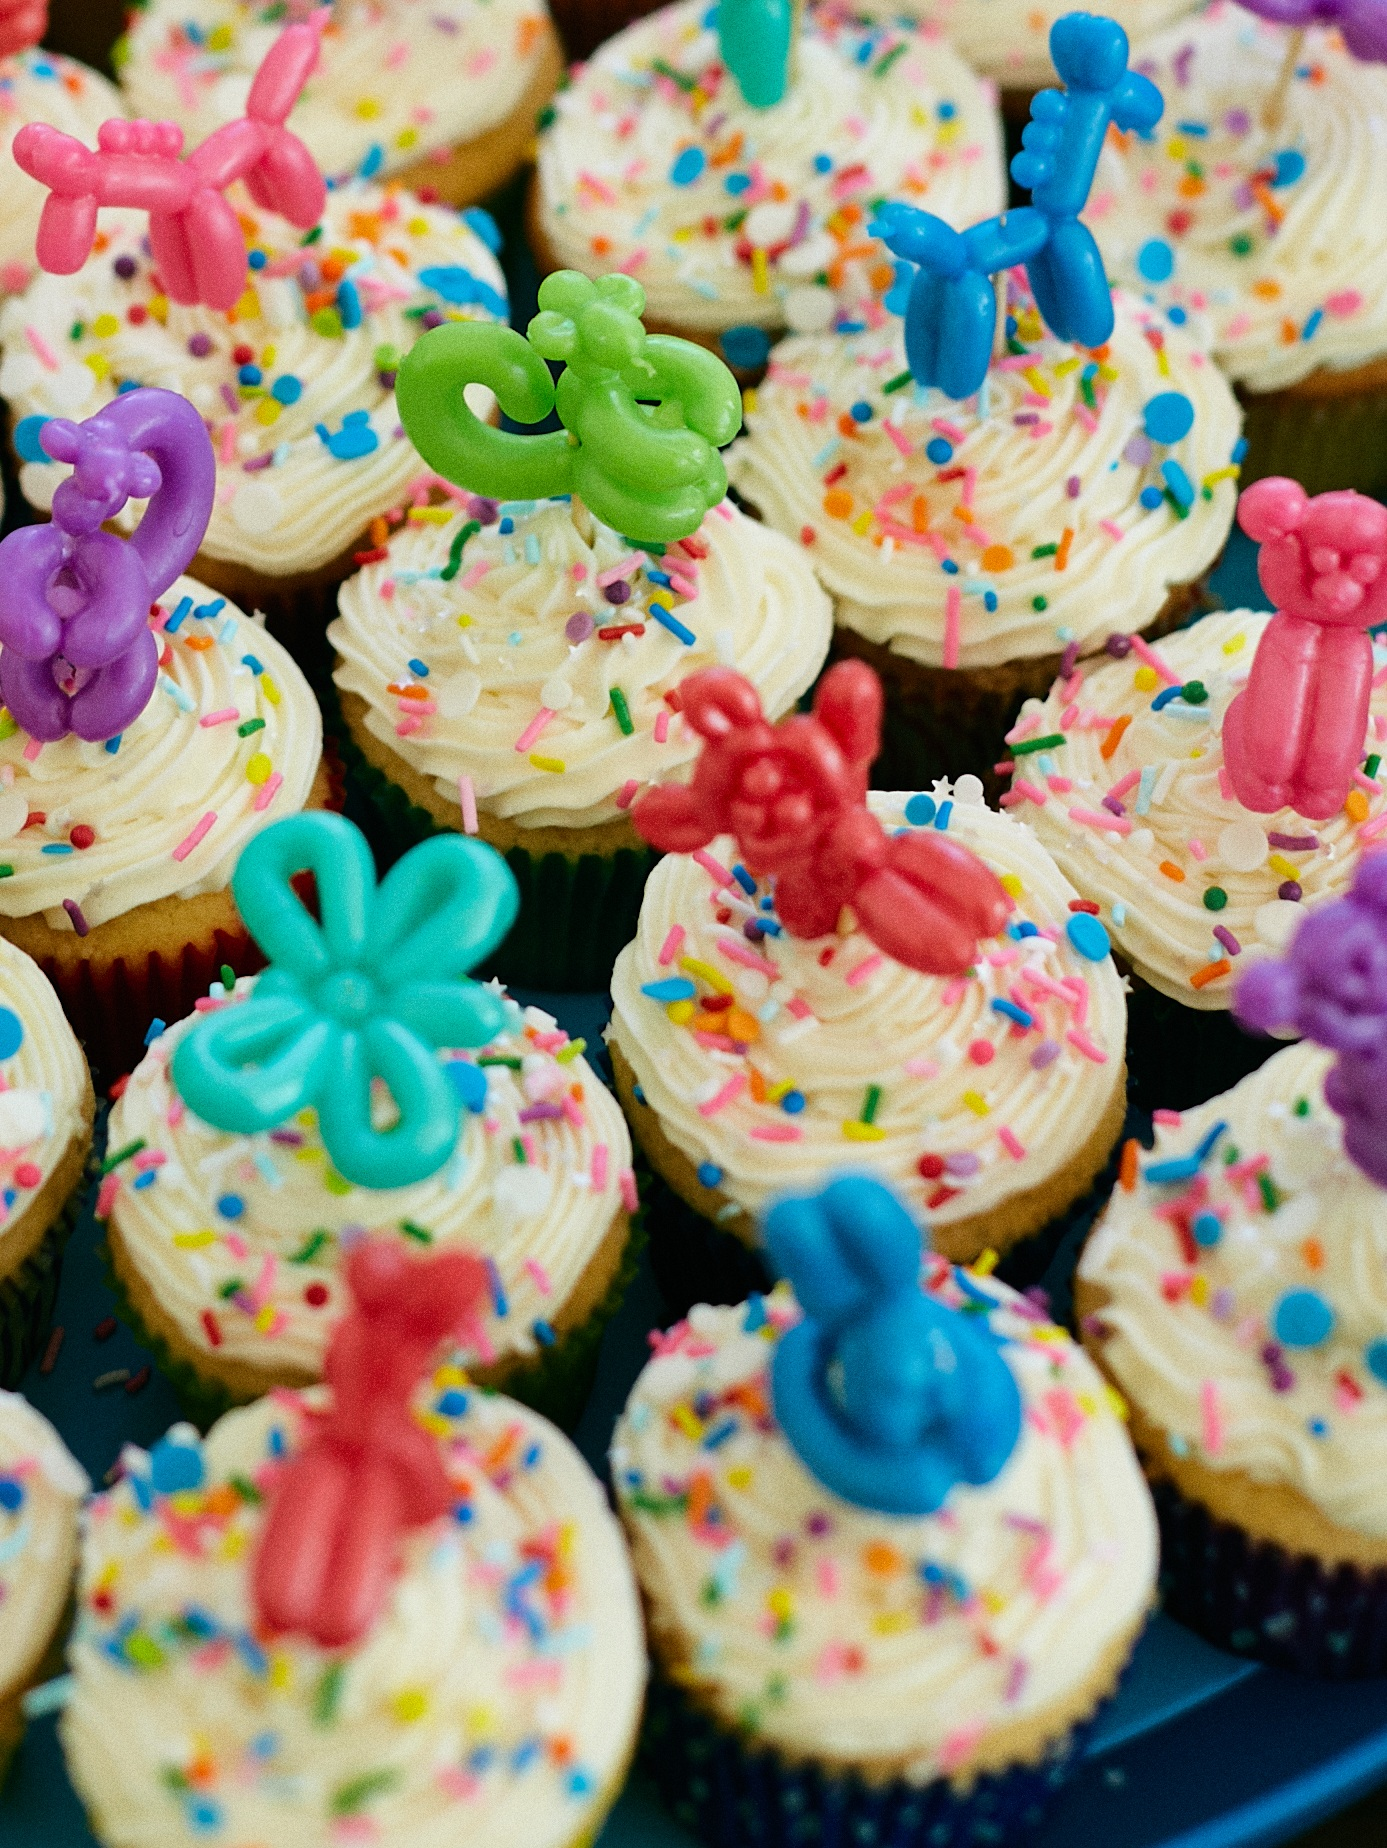 cupcakes and toppers.jpg